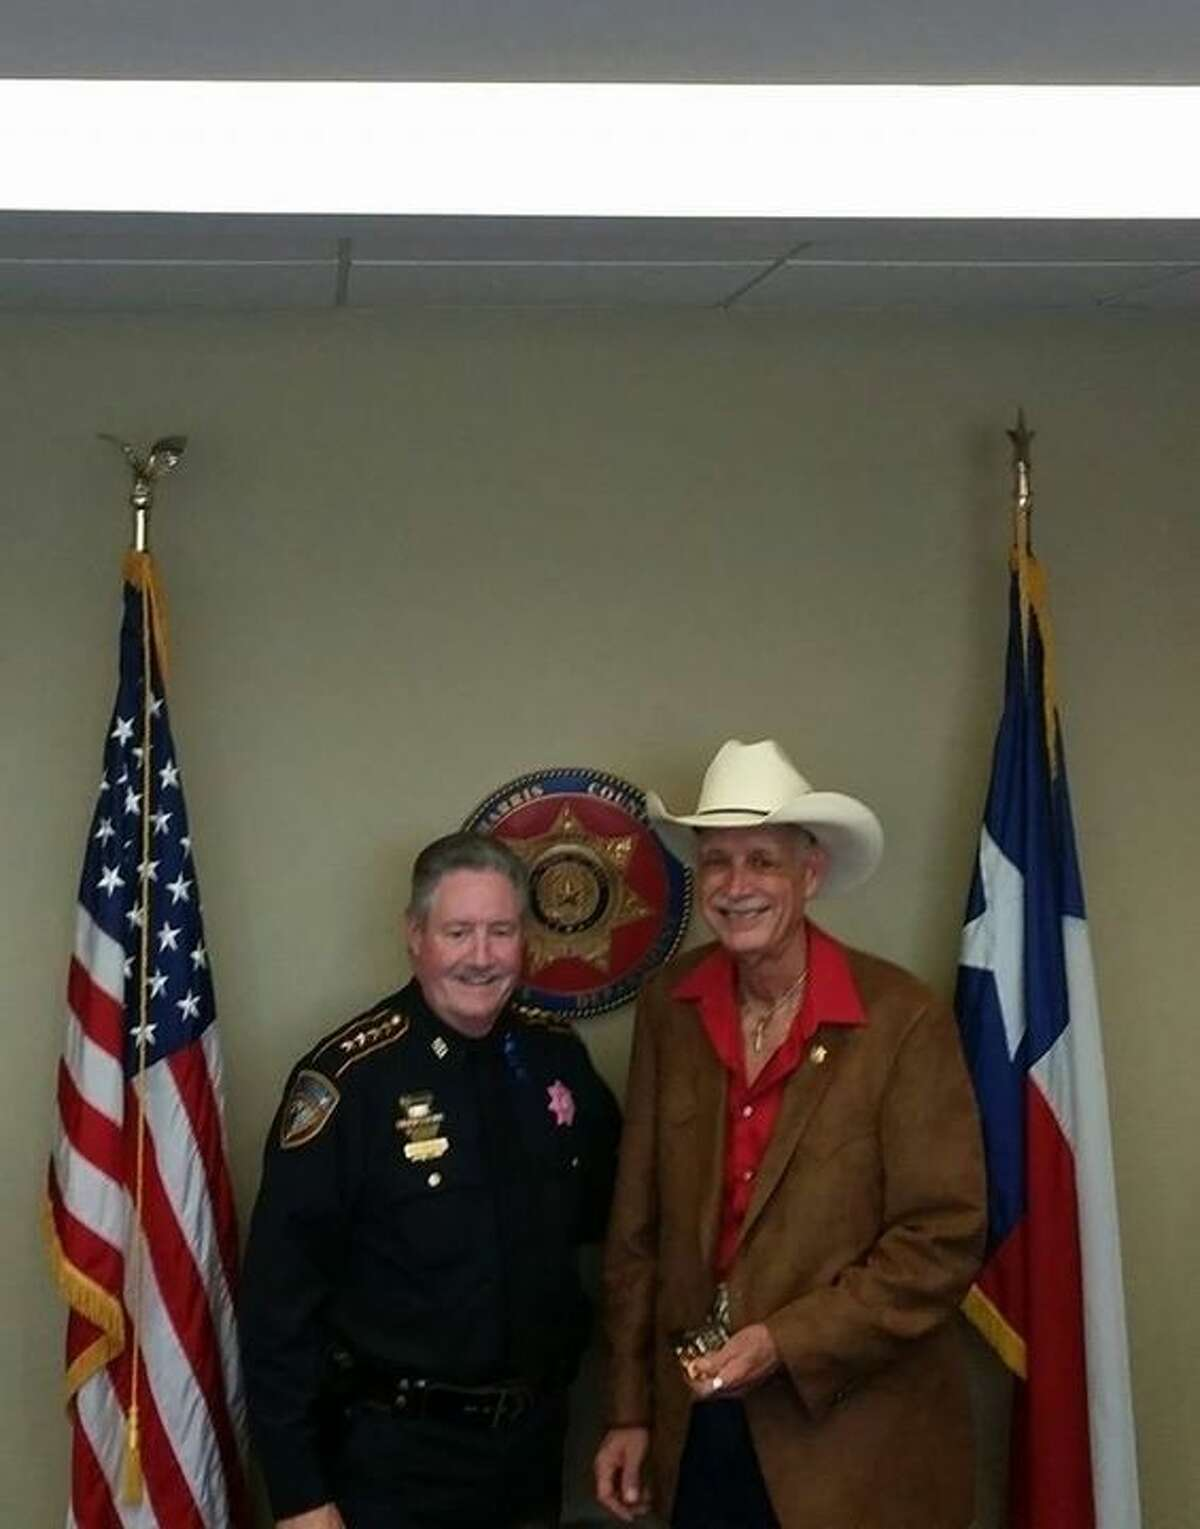 Summerwood resident Captain Mark A. Wrobleski recently retired after 33 years honorable service with the Harris County Sheriff's Office.